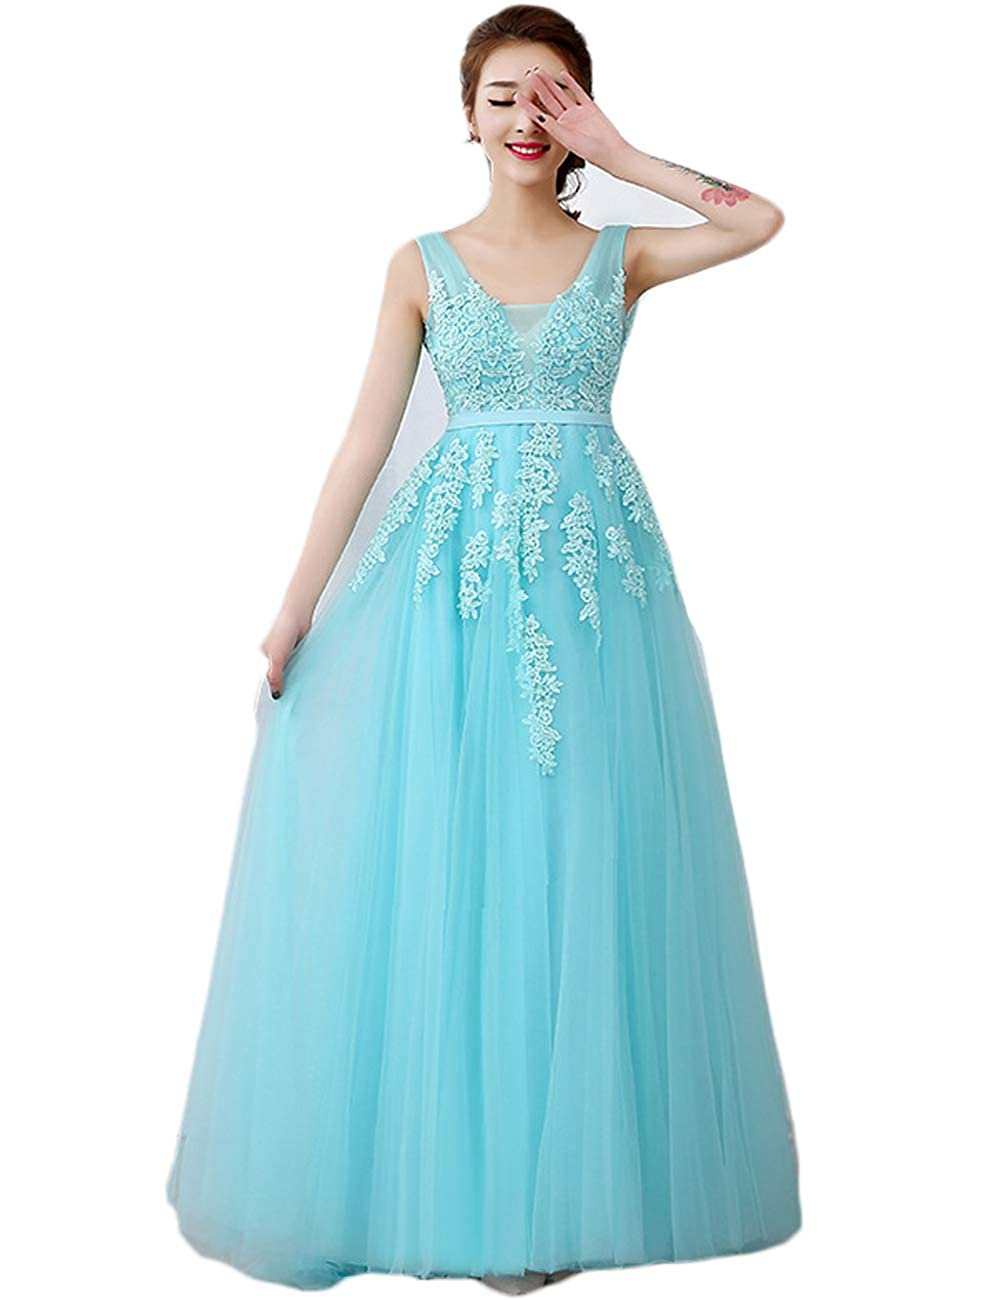 Green ritz intimate Women Sheer Lace Evening Gowns VNeck Elegant Backless Dress